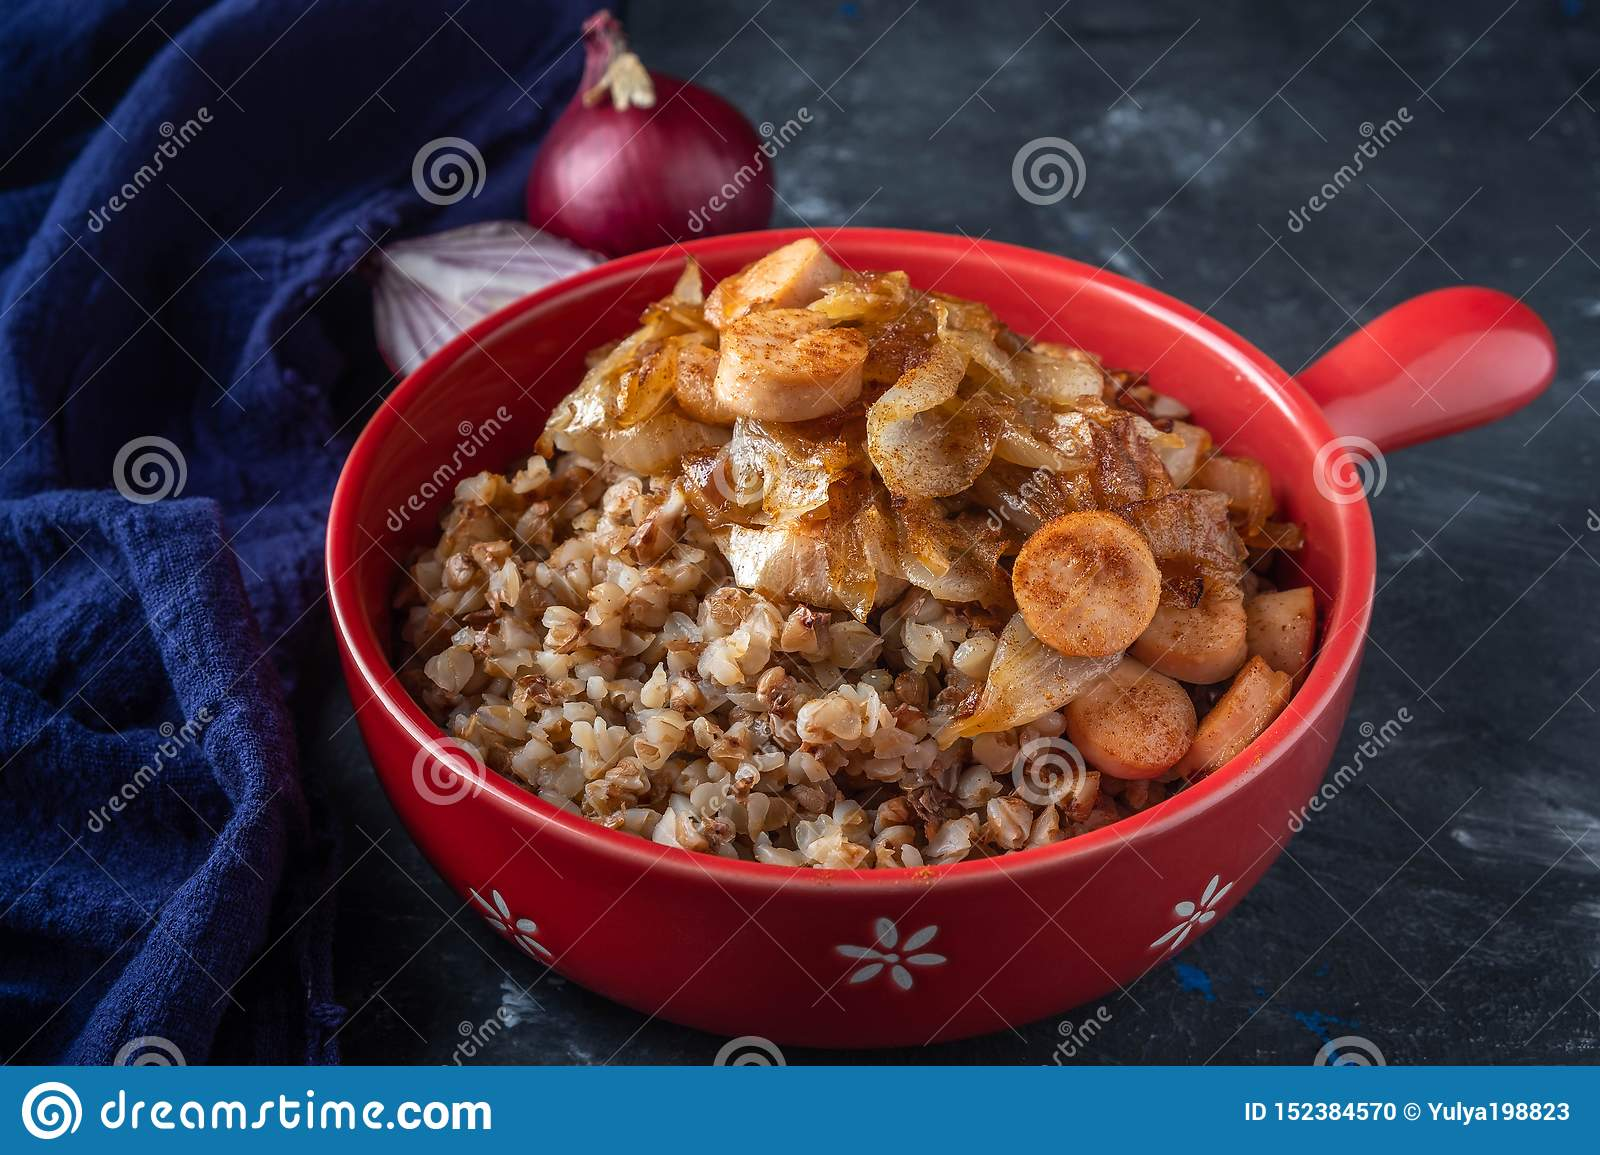 Buckwheat porridge with sausages and fried onions in a red pan on a dark background, copy space